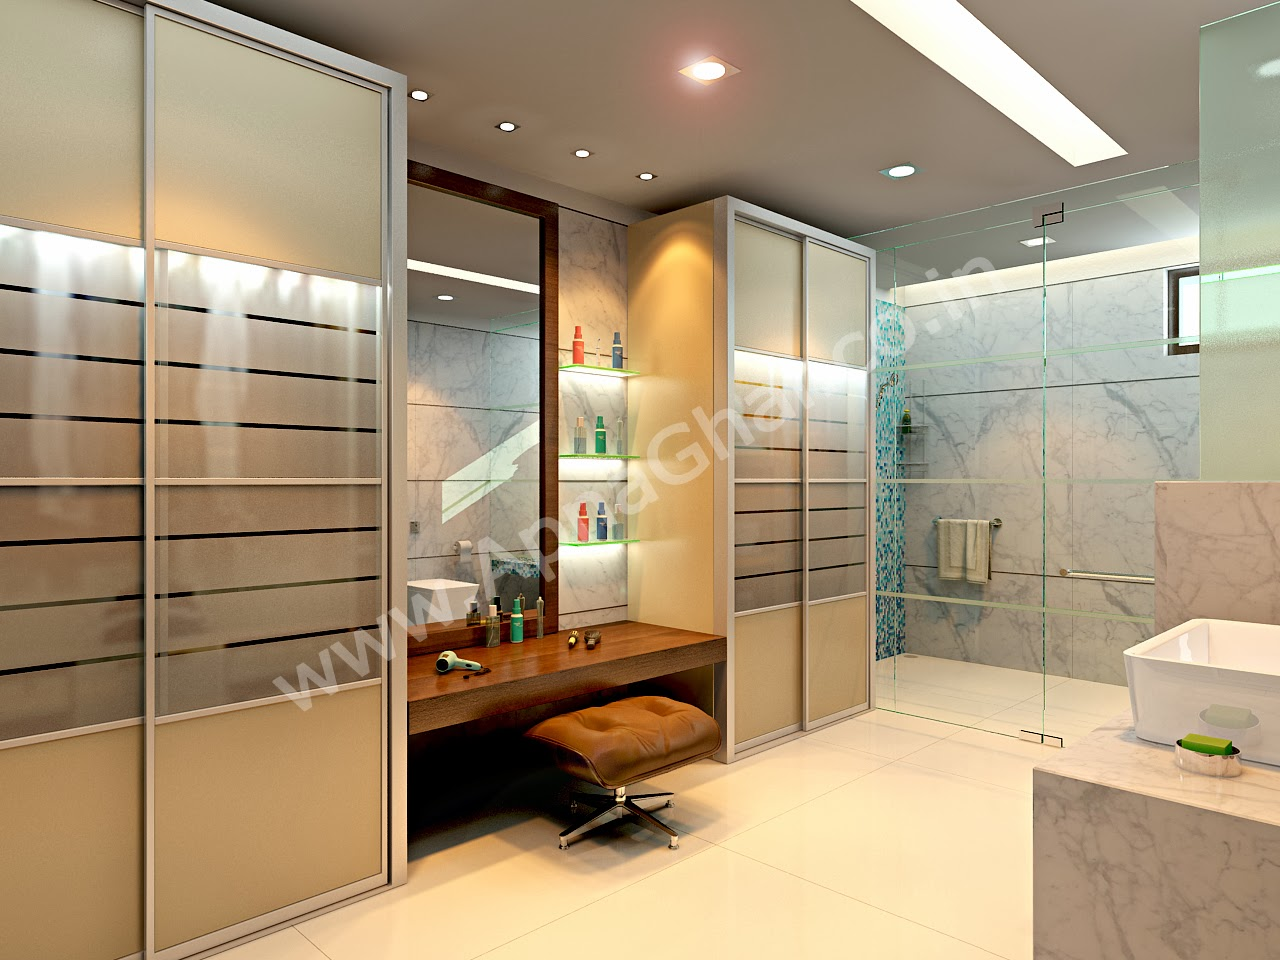 luxurious toilets interior design ideas | Bill House Plans